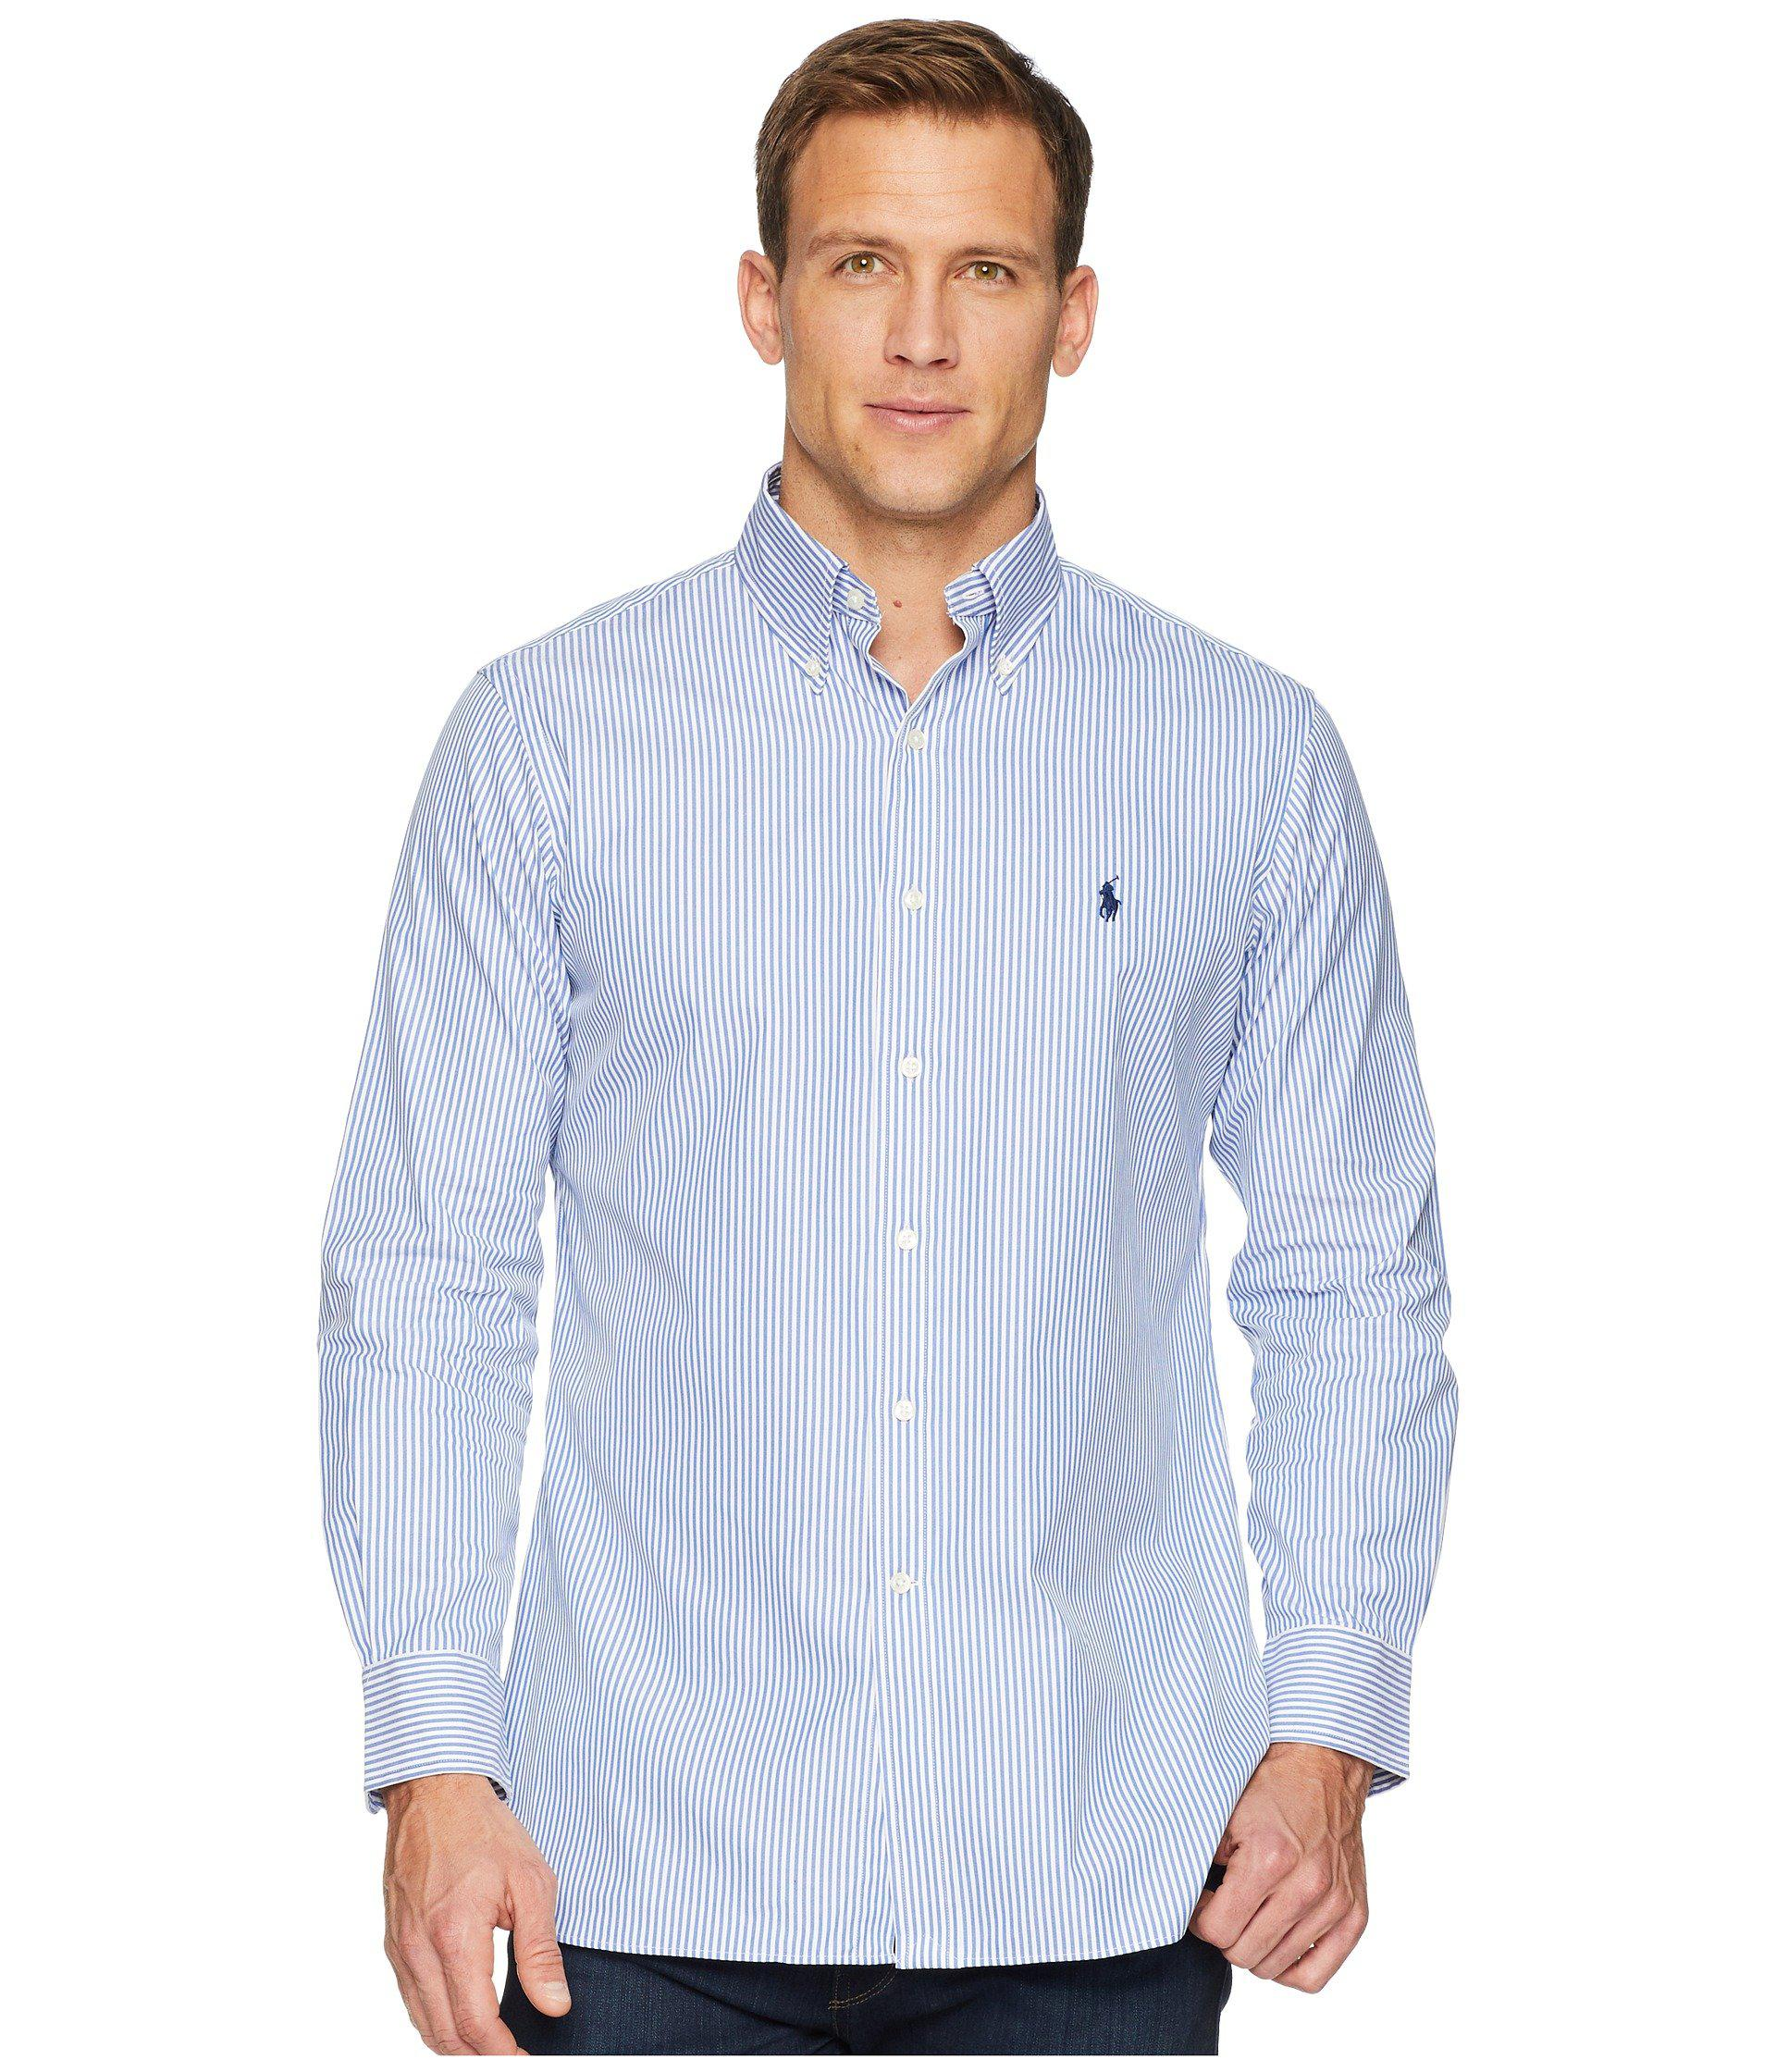 eb678aafb12f Lyst - Polo Ralph Lauren Standard Fit Poplin Dress Shirt (blue white ...